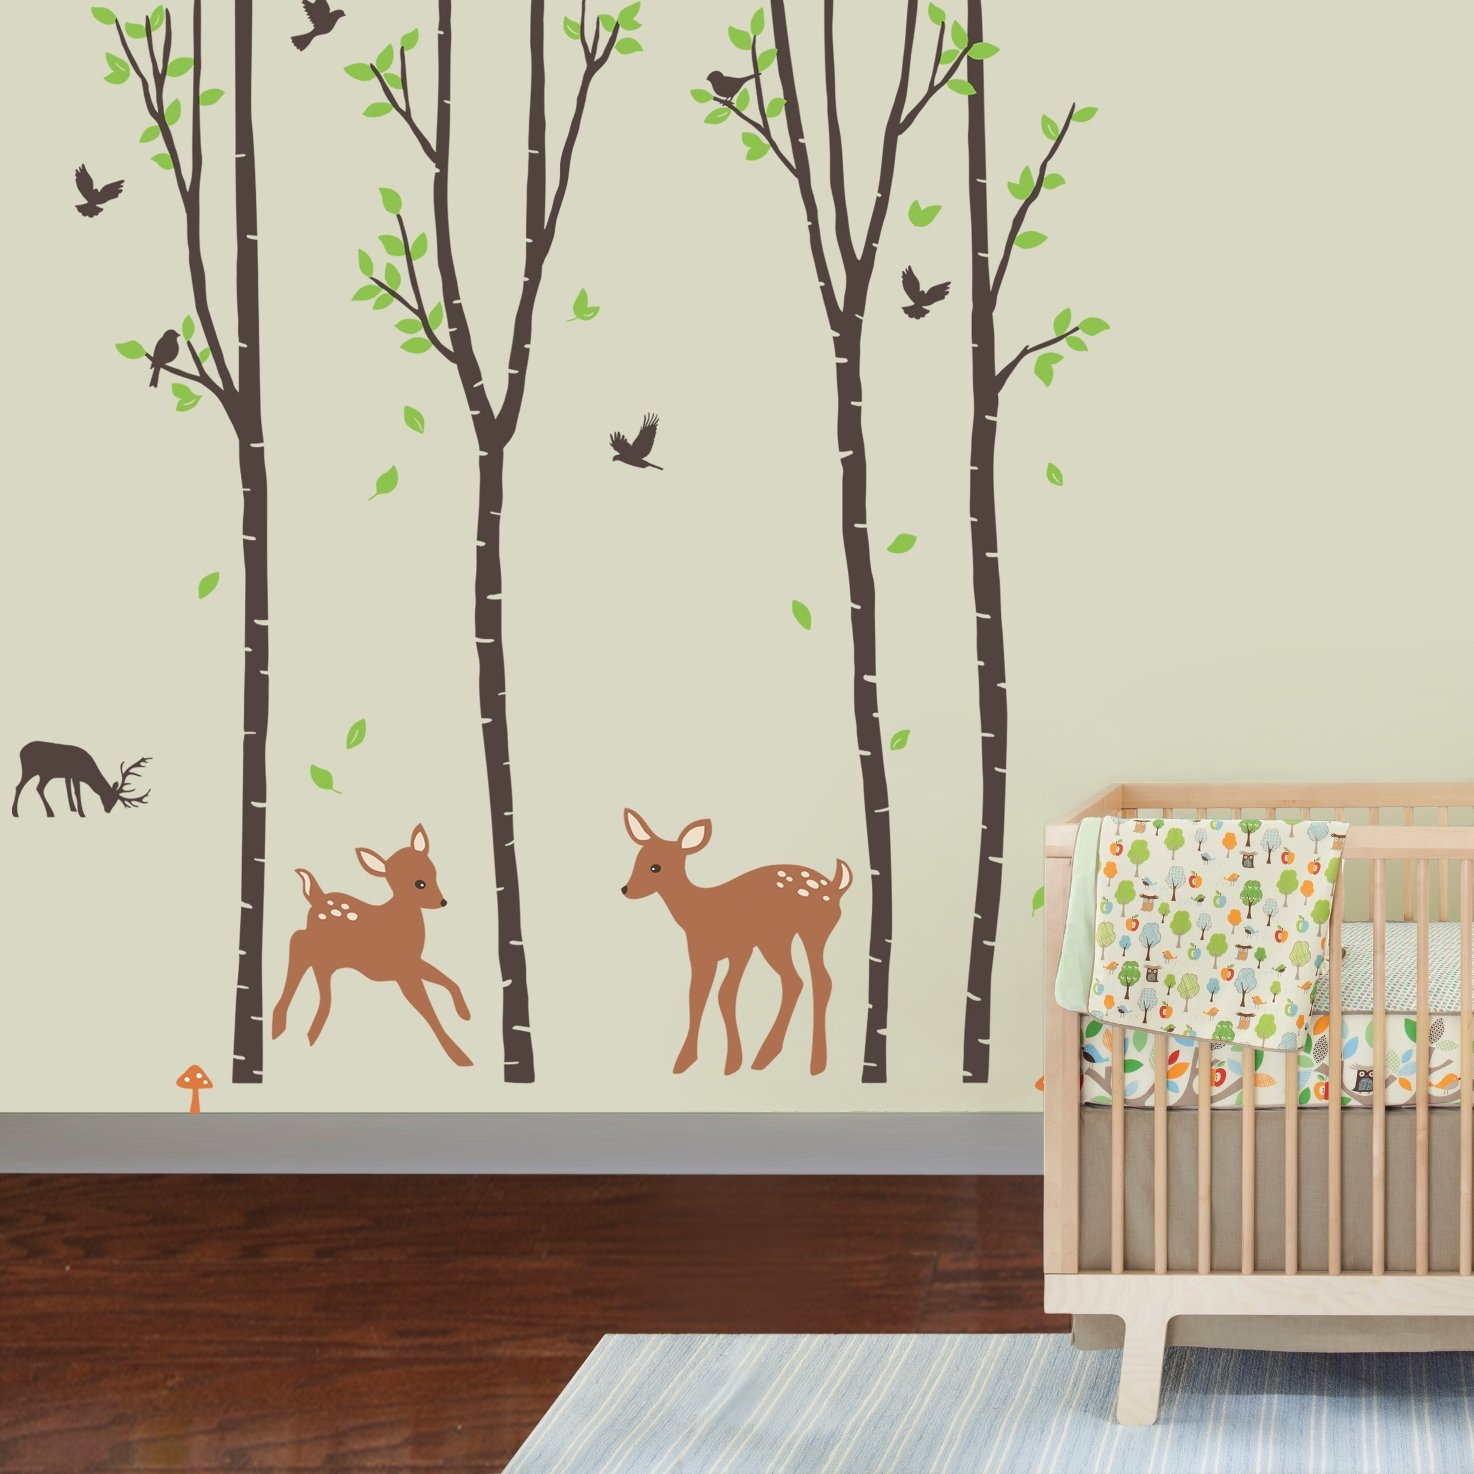 Amazon giant wall sticker decals birch tree forest with amazon giant wall sticker decals birch tree forest with deers and flying birds baby trees are 6 feet tall home improvement amipublicfo Choice Image